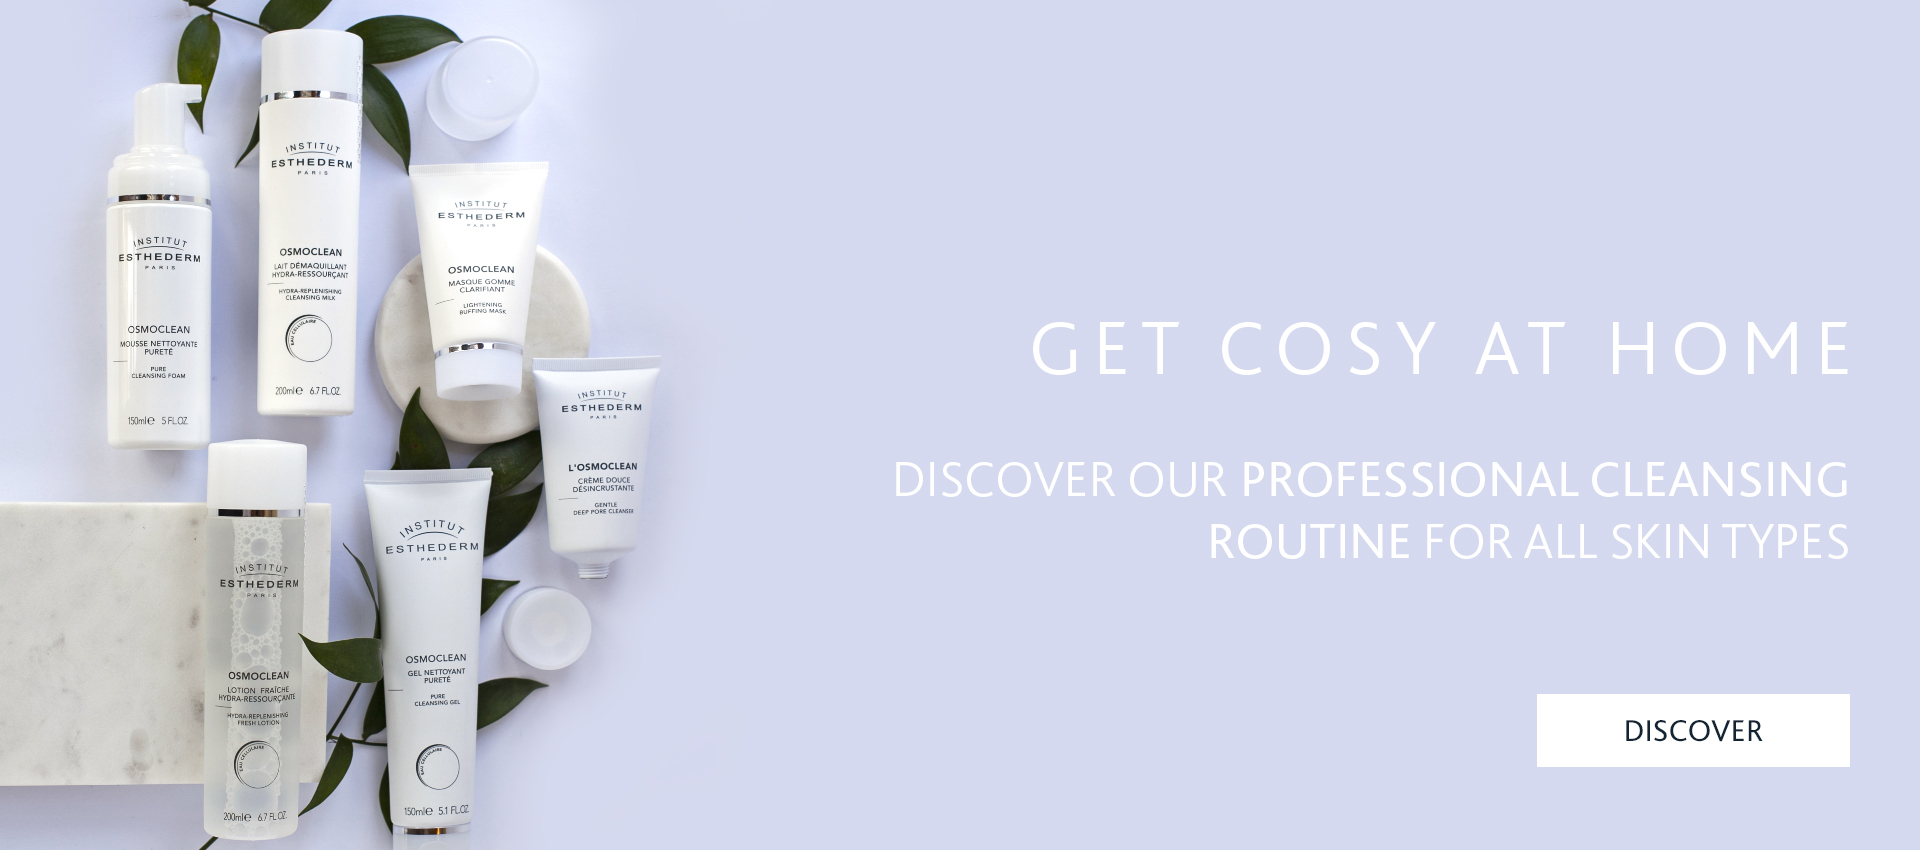 Institut Esthederm Osmoclean Facial at home routine